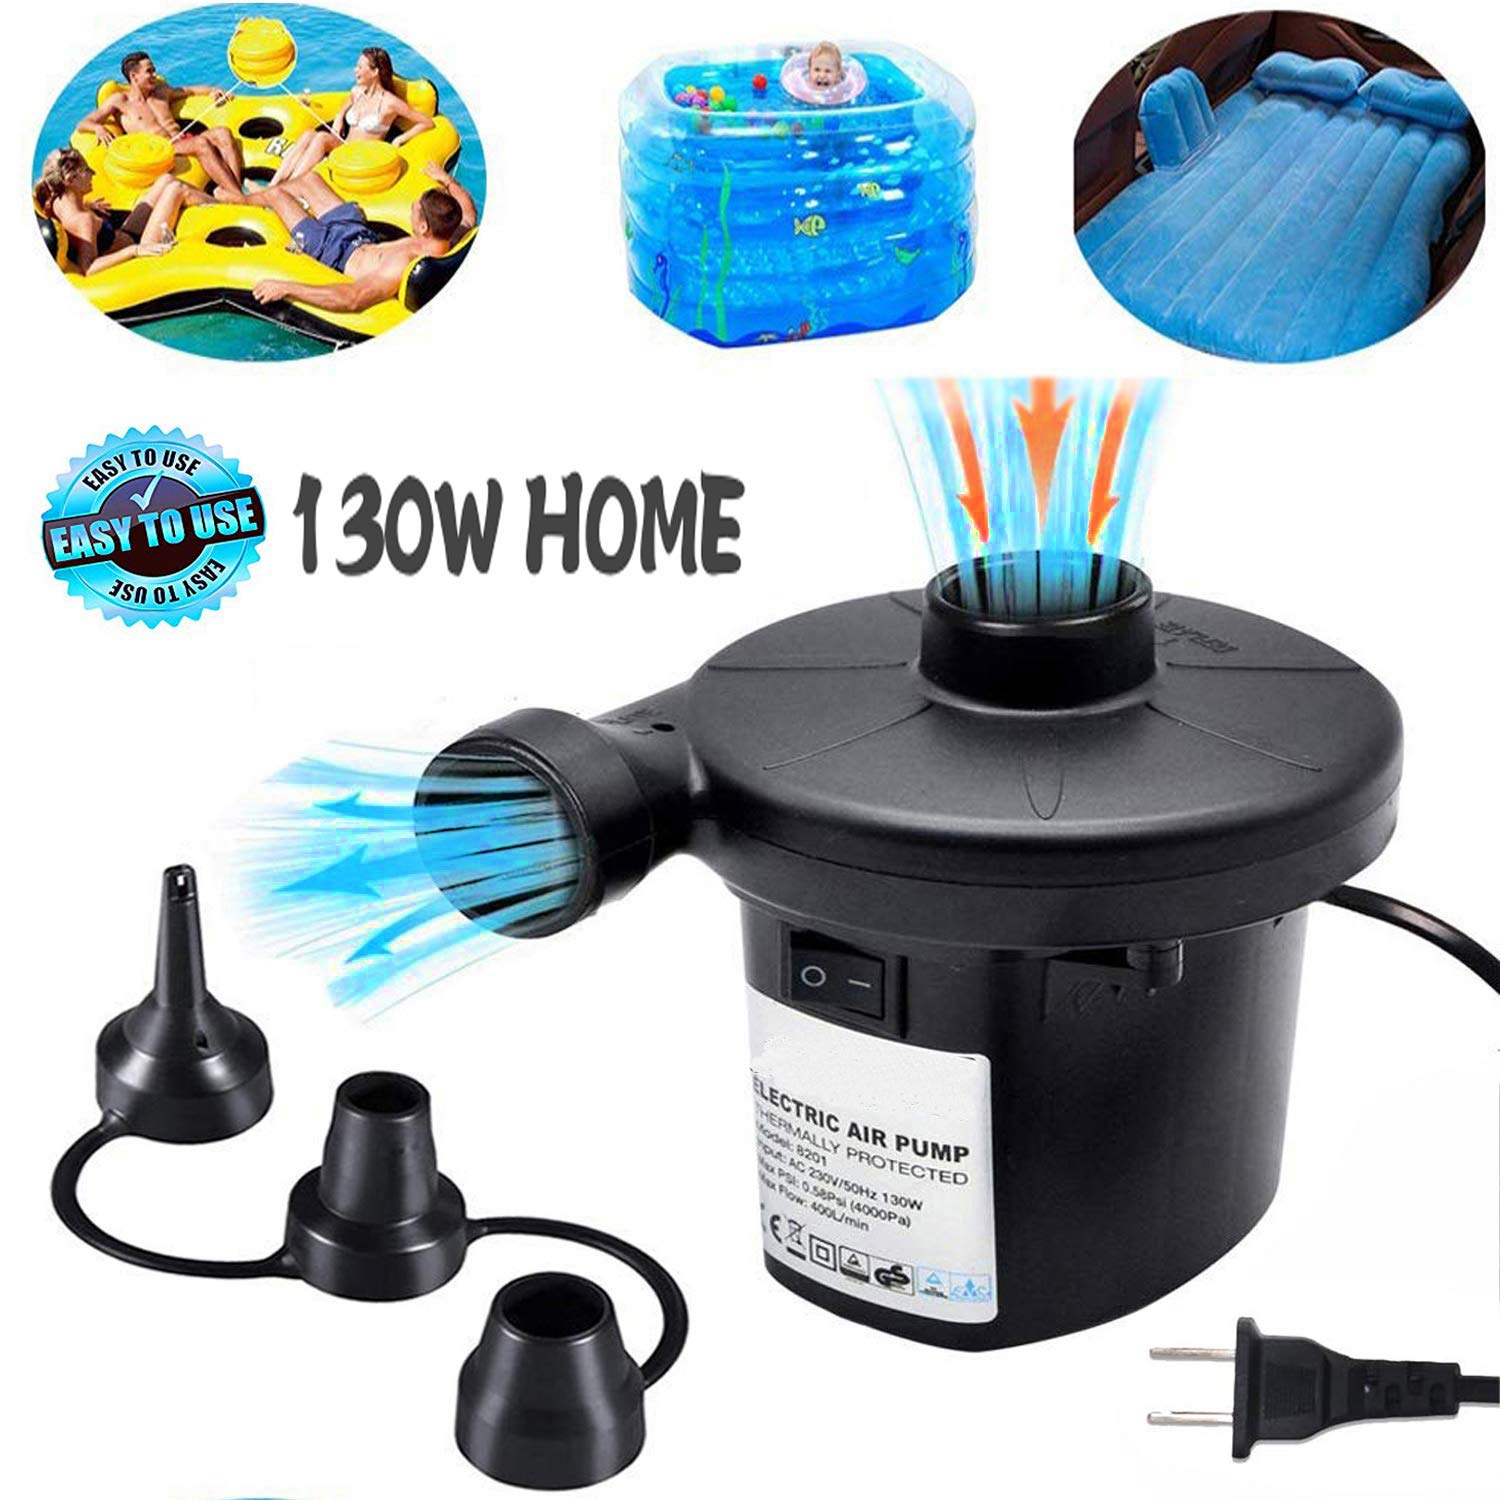 Electric Air Pump for Inflatables ONG NAMO Portable Quick Air Pump with 3 Nozzles for Air Mattresses